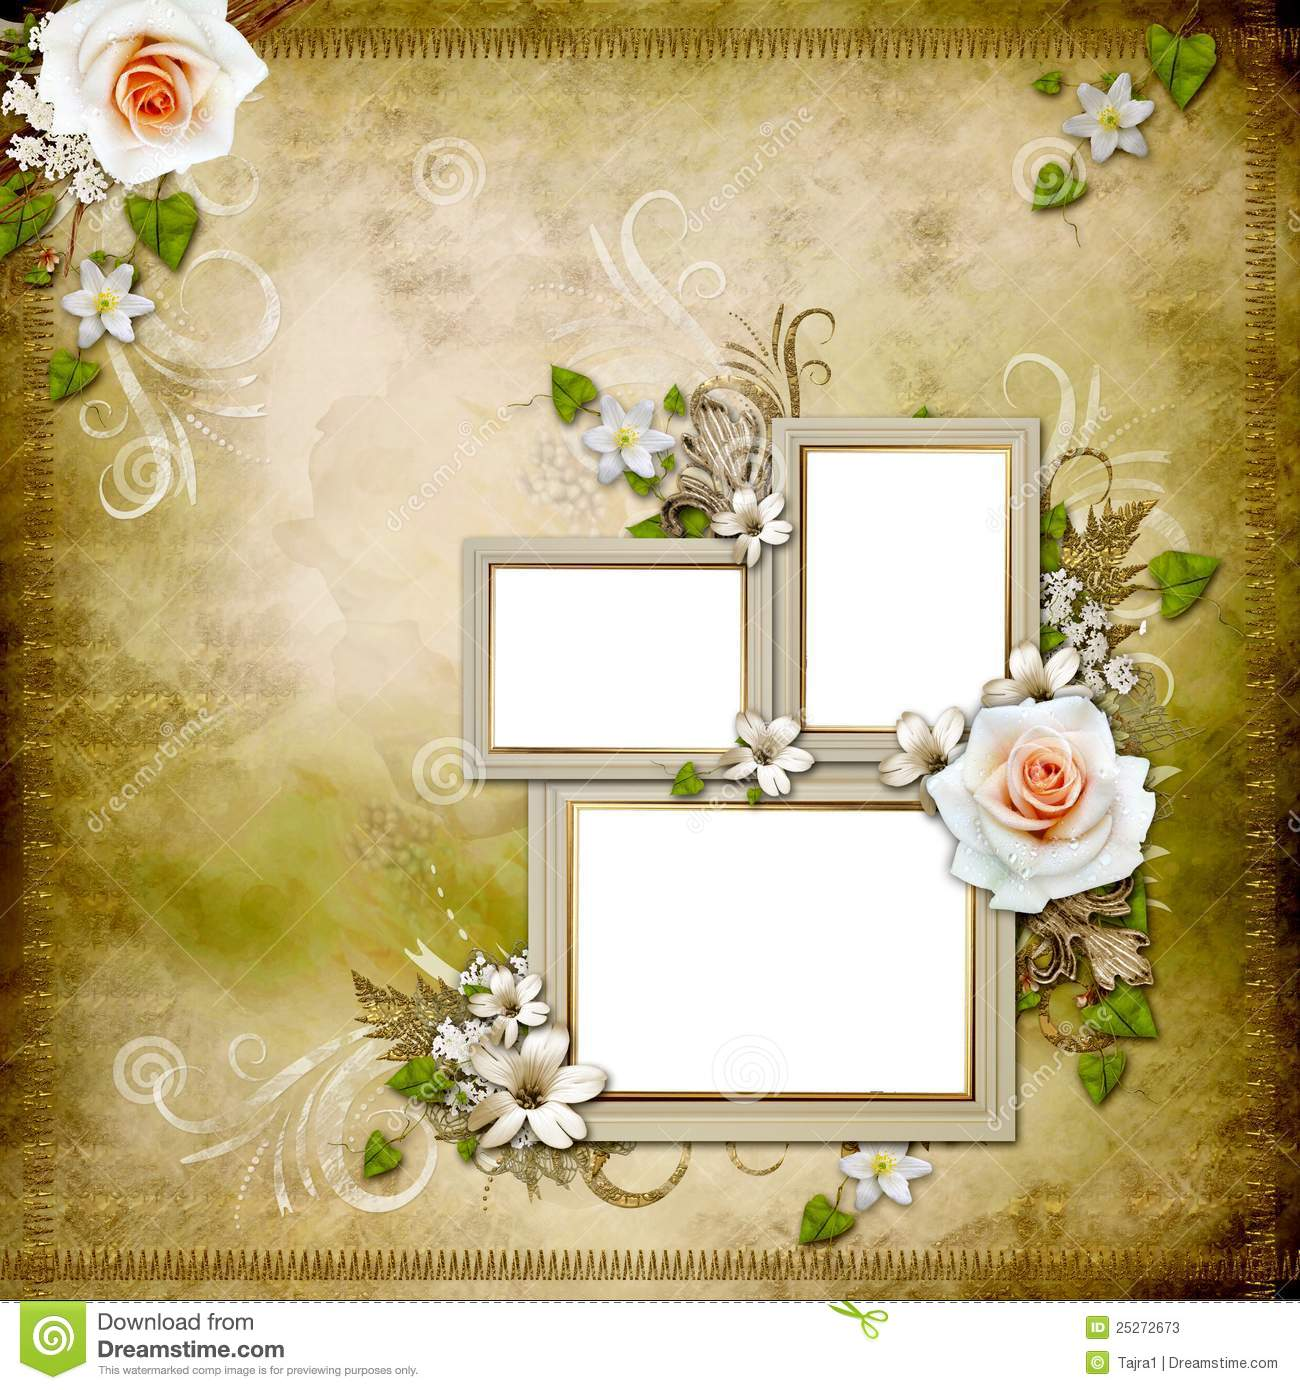 Frames And Butterfly Flower Border